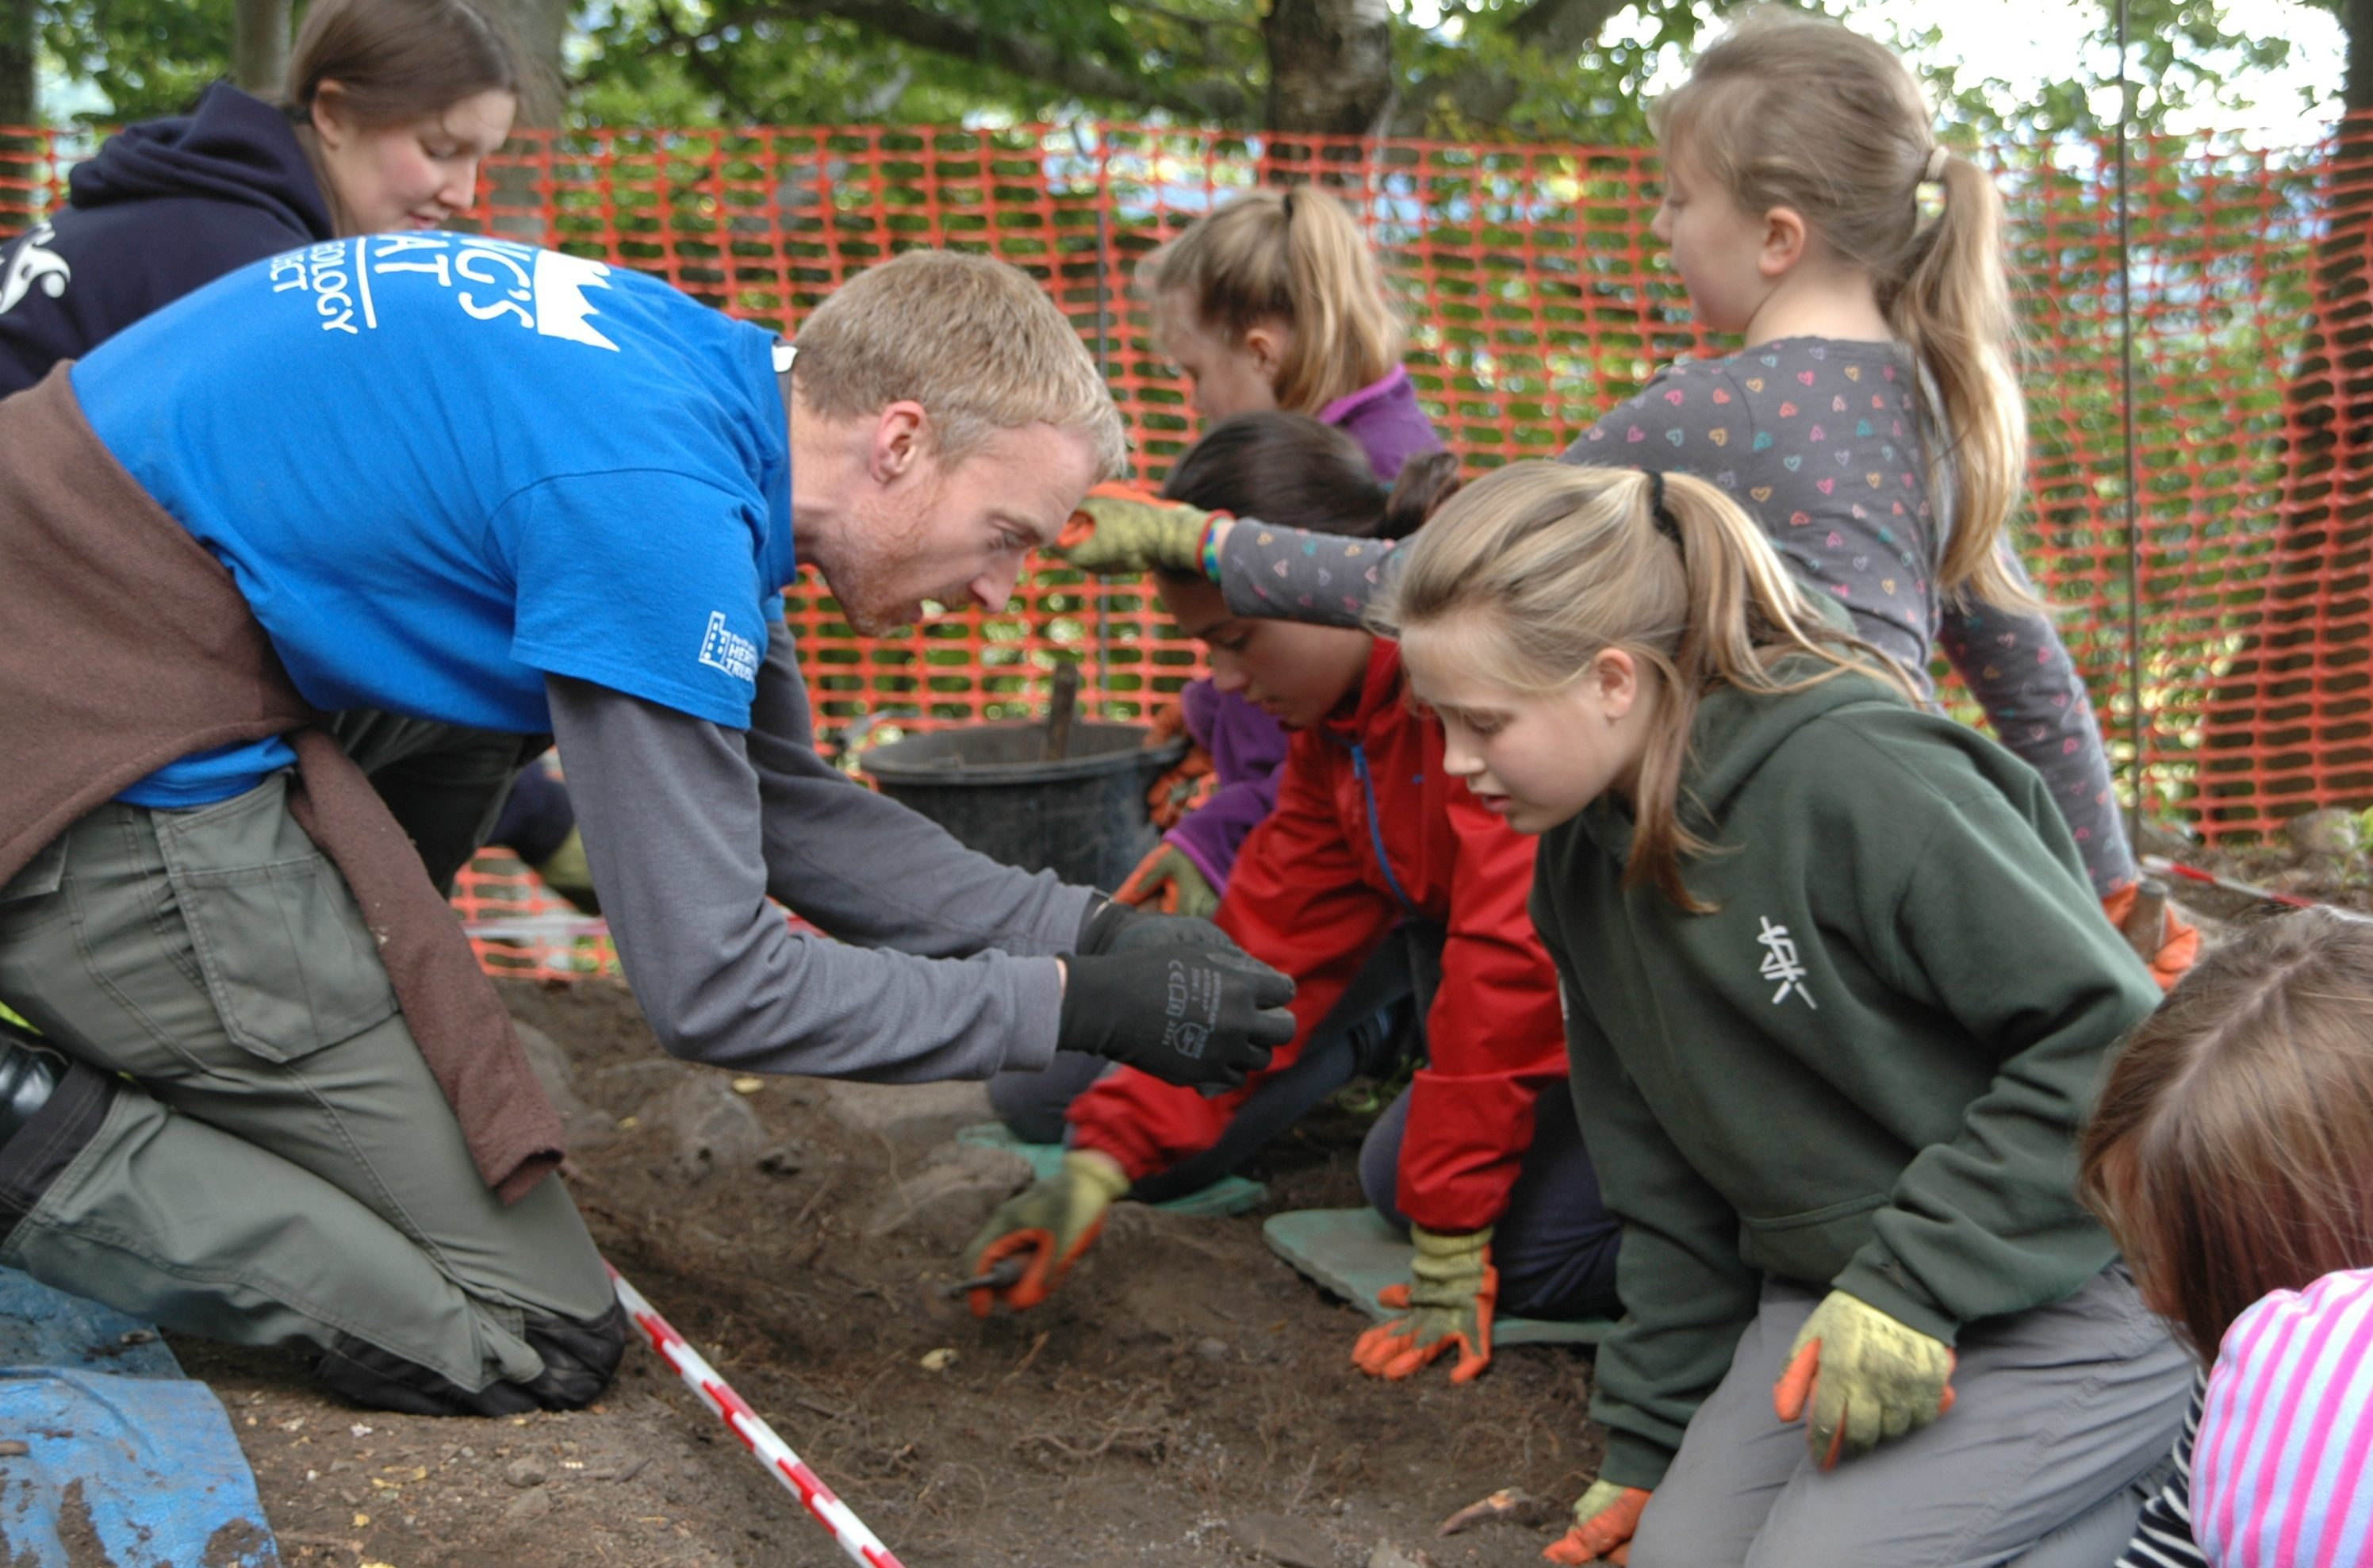 PKHT outreach officer Gavin Lindsay and AOC Archaeologist Katie Roper teaching P6 pupils from Royal School of Dunkeld how to dig and identify artefacts at the fort.